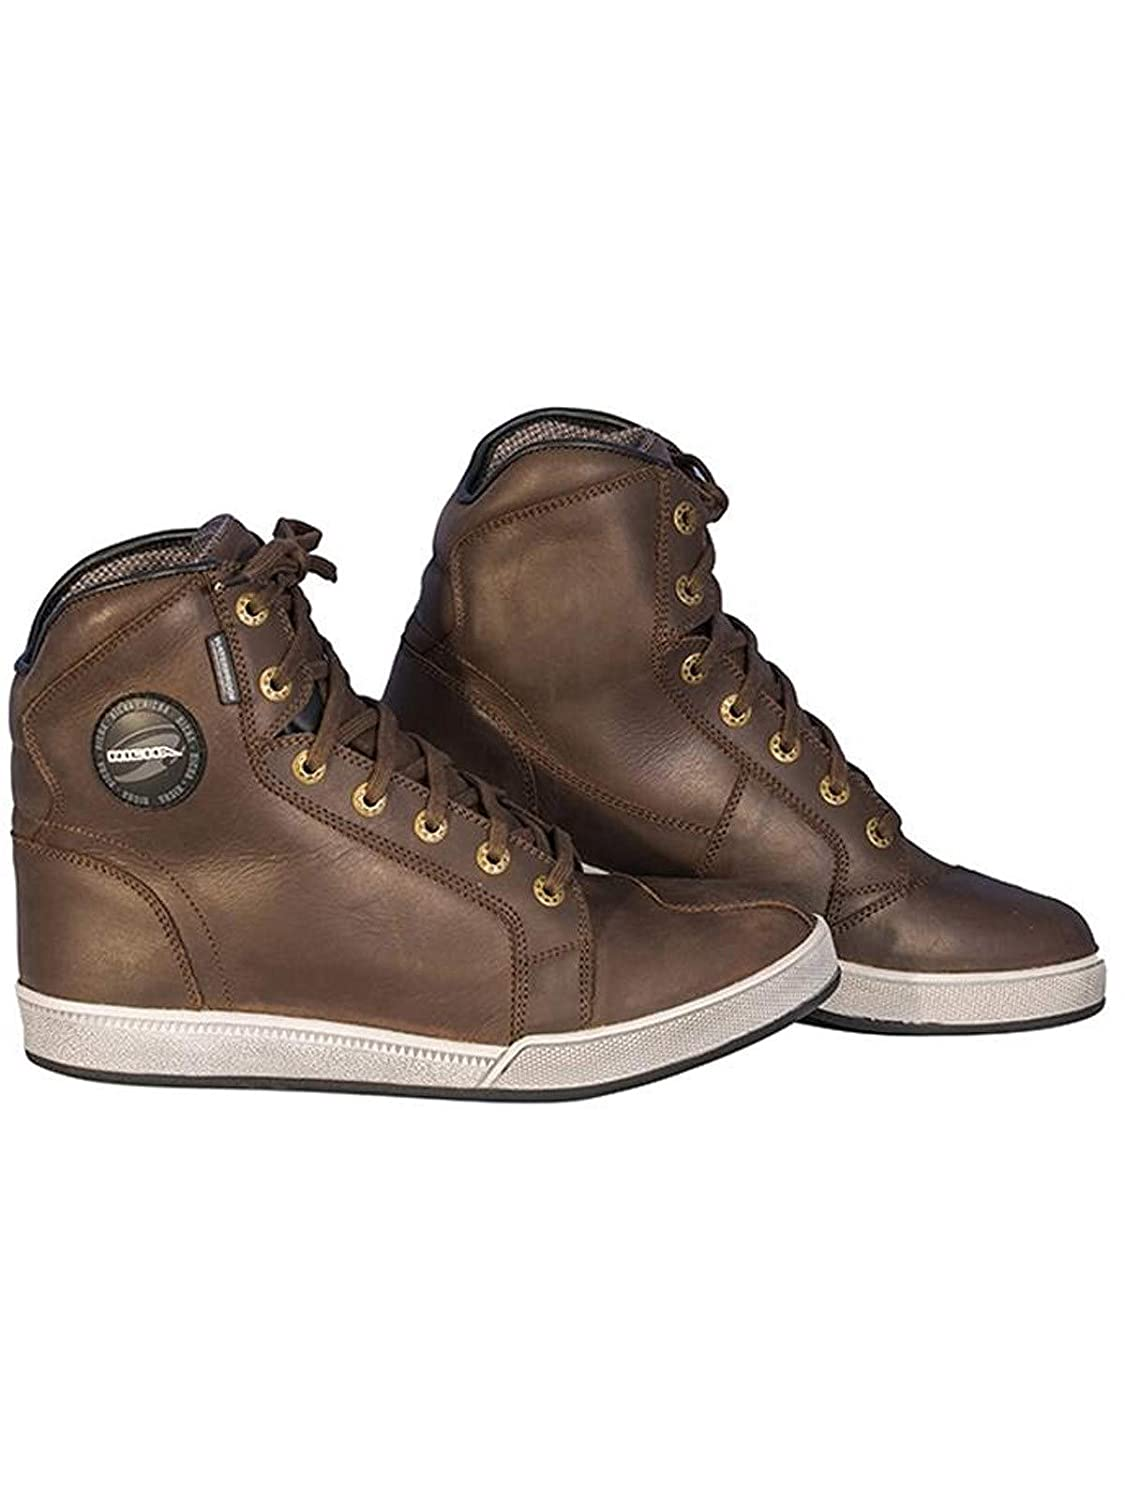 Richa Krazy Horse Motorcycle Boots Brown 47